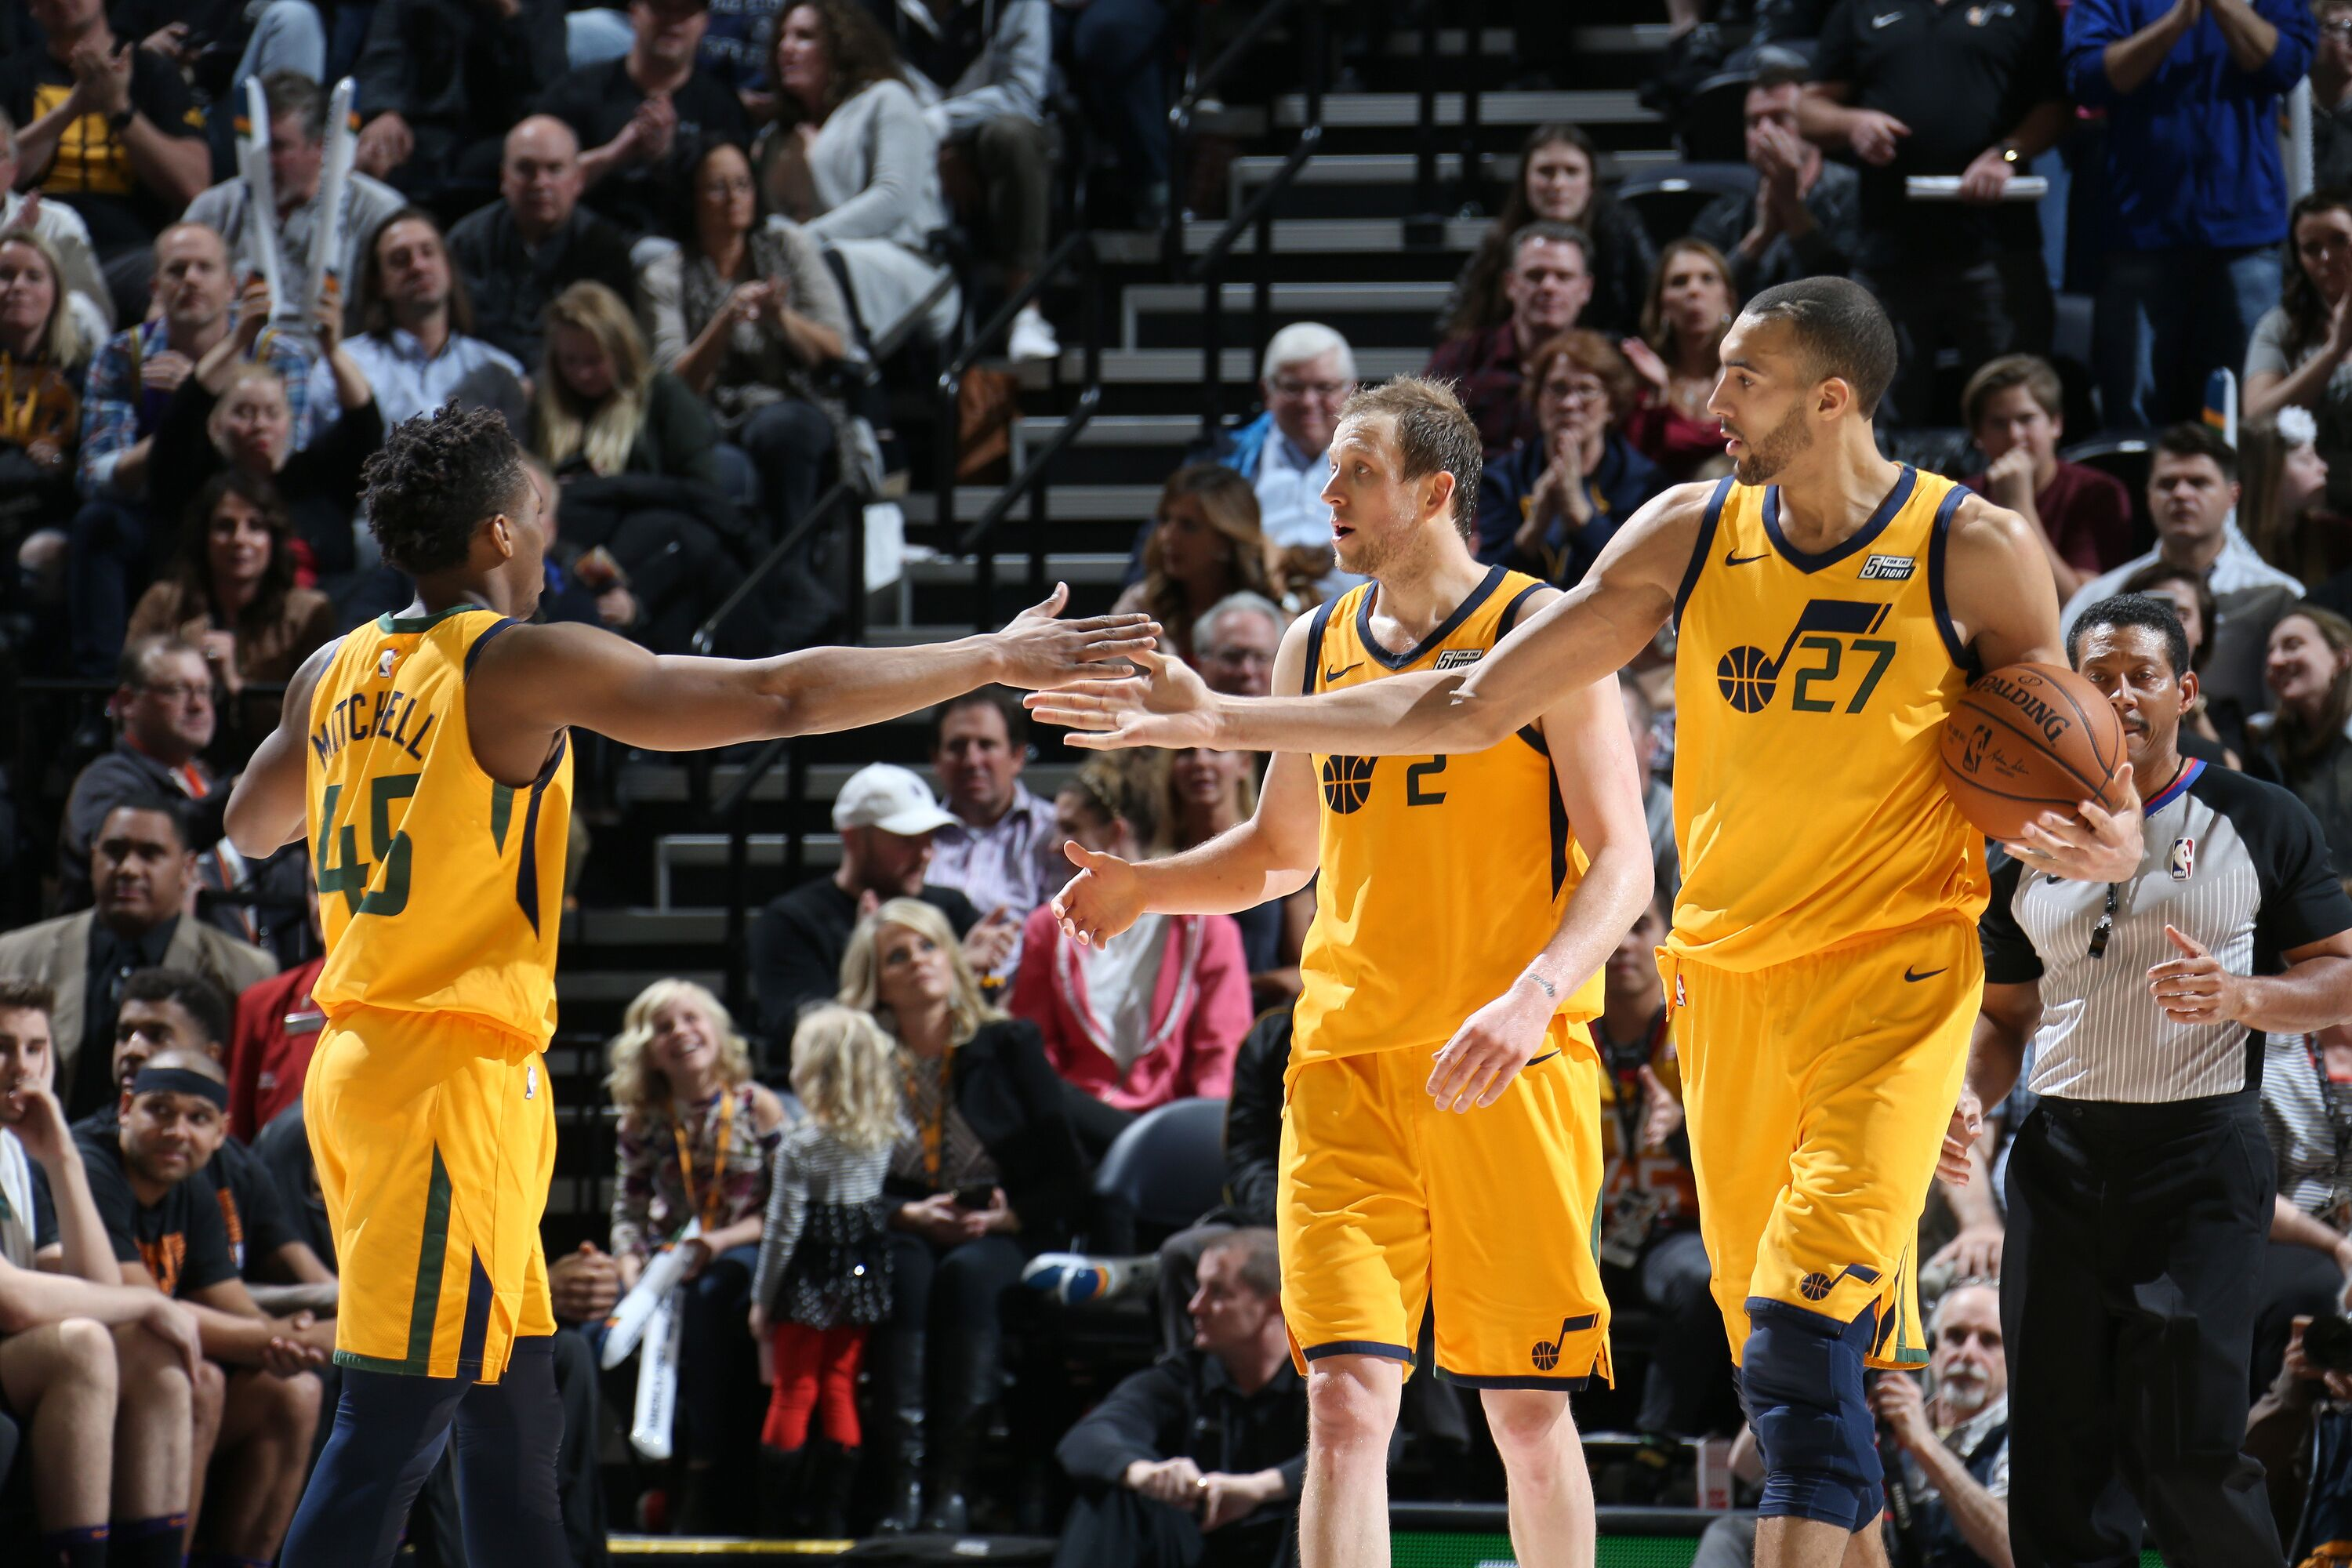 bddf7c4da61 The Ringer latest to pin Utah Jazz as potential No. 2 team in West